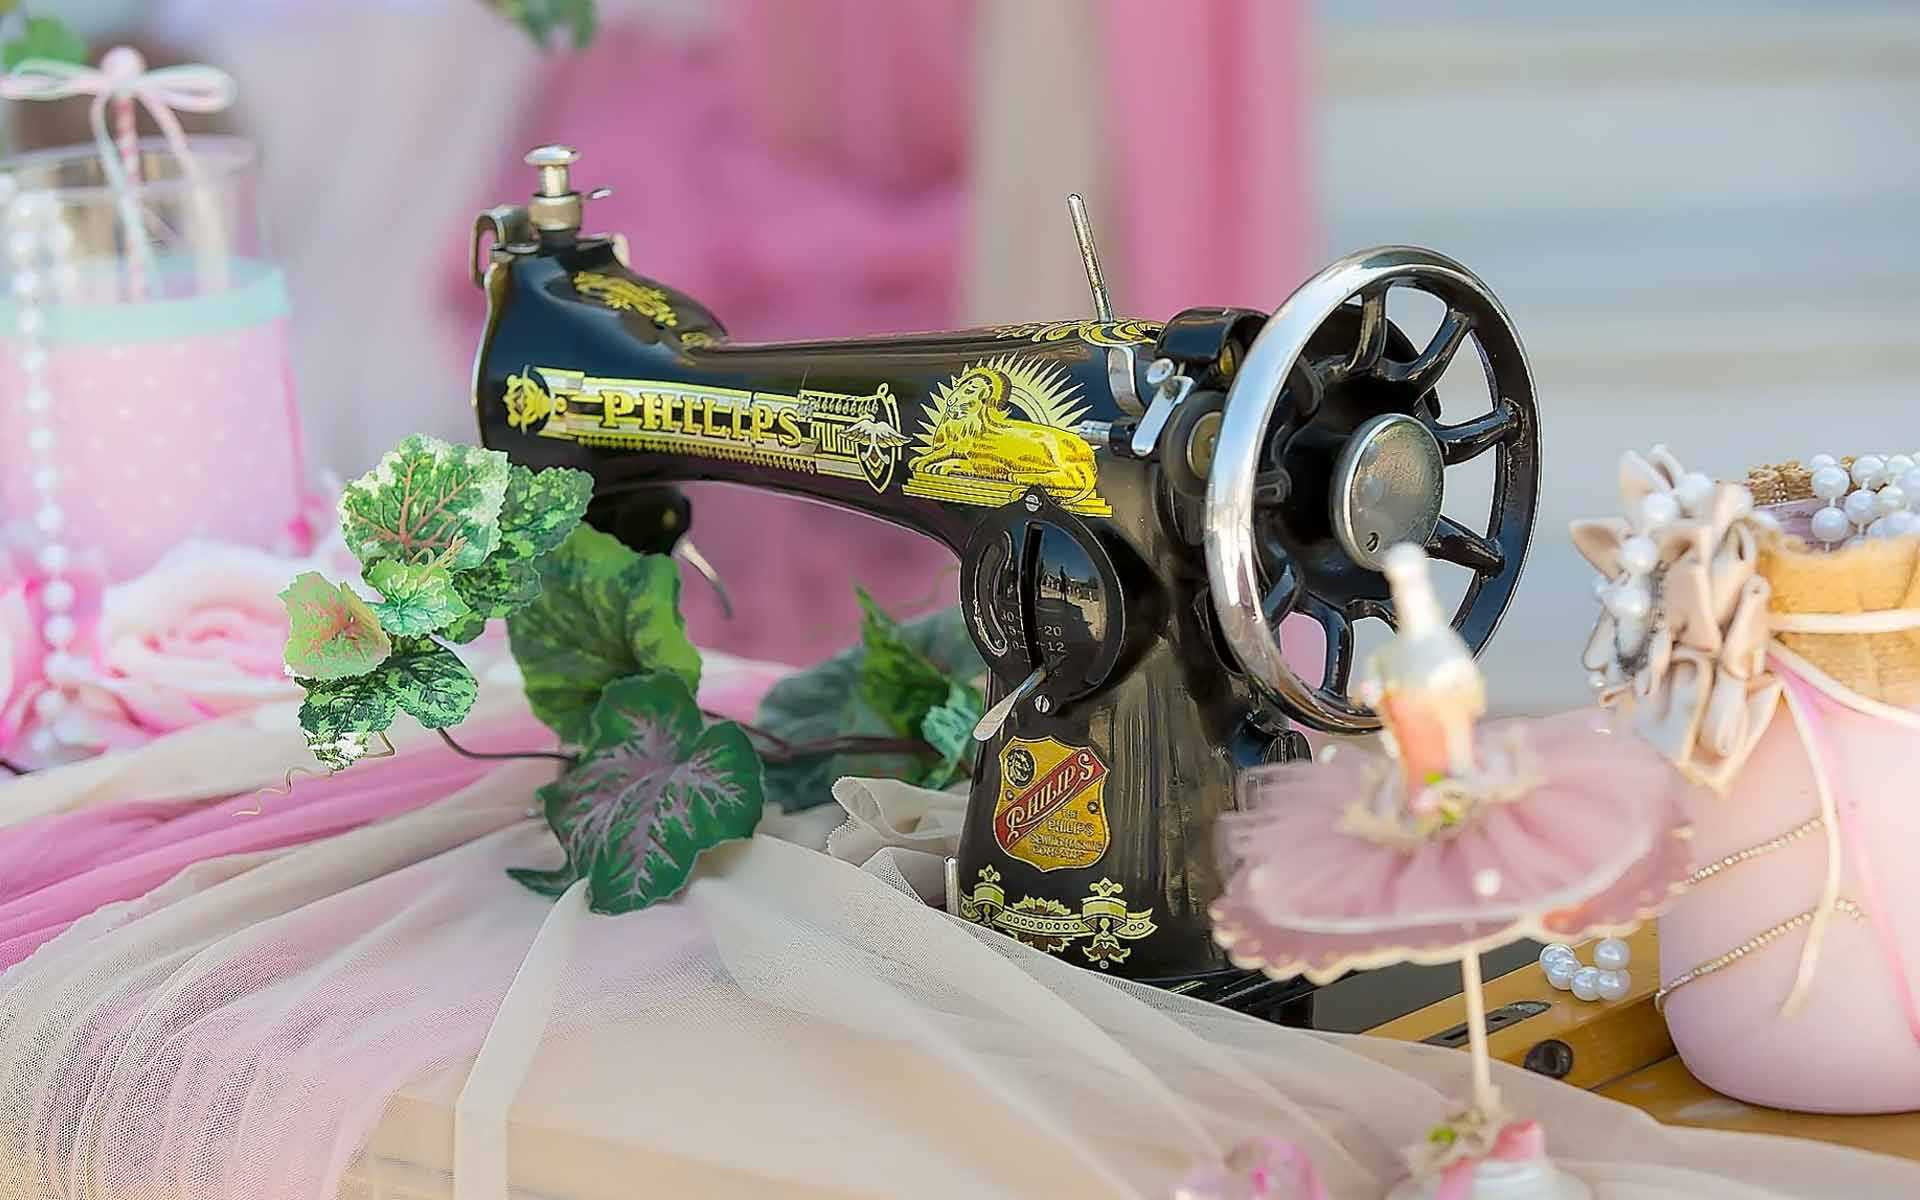 Sewing-Machine-As-A-Baptism-Decor